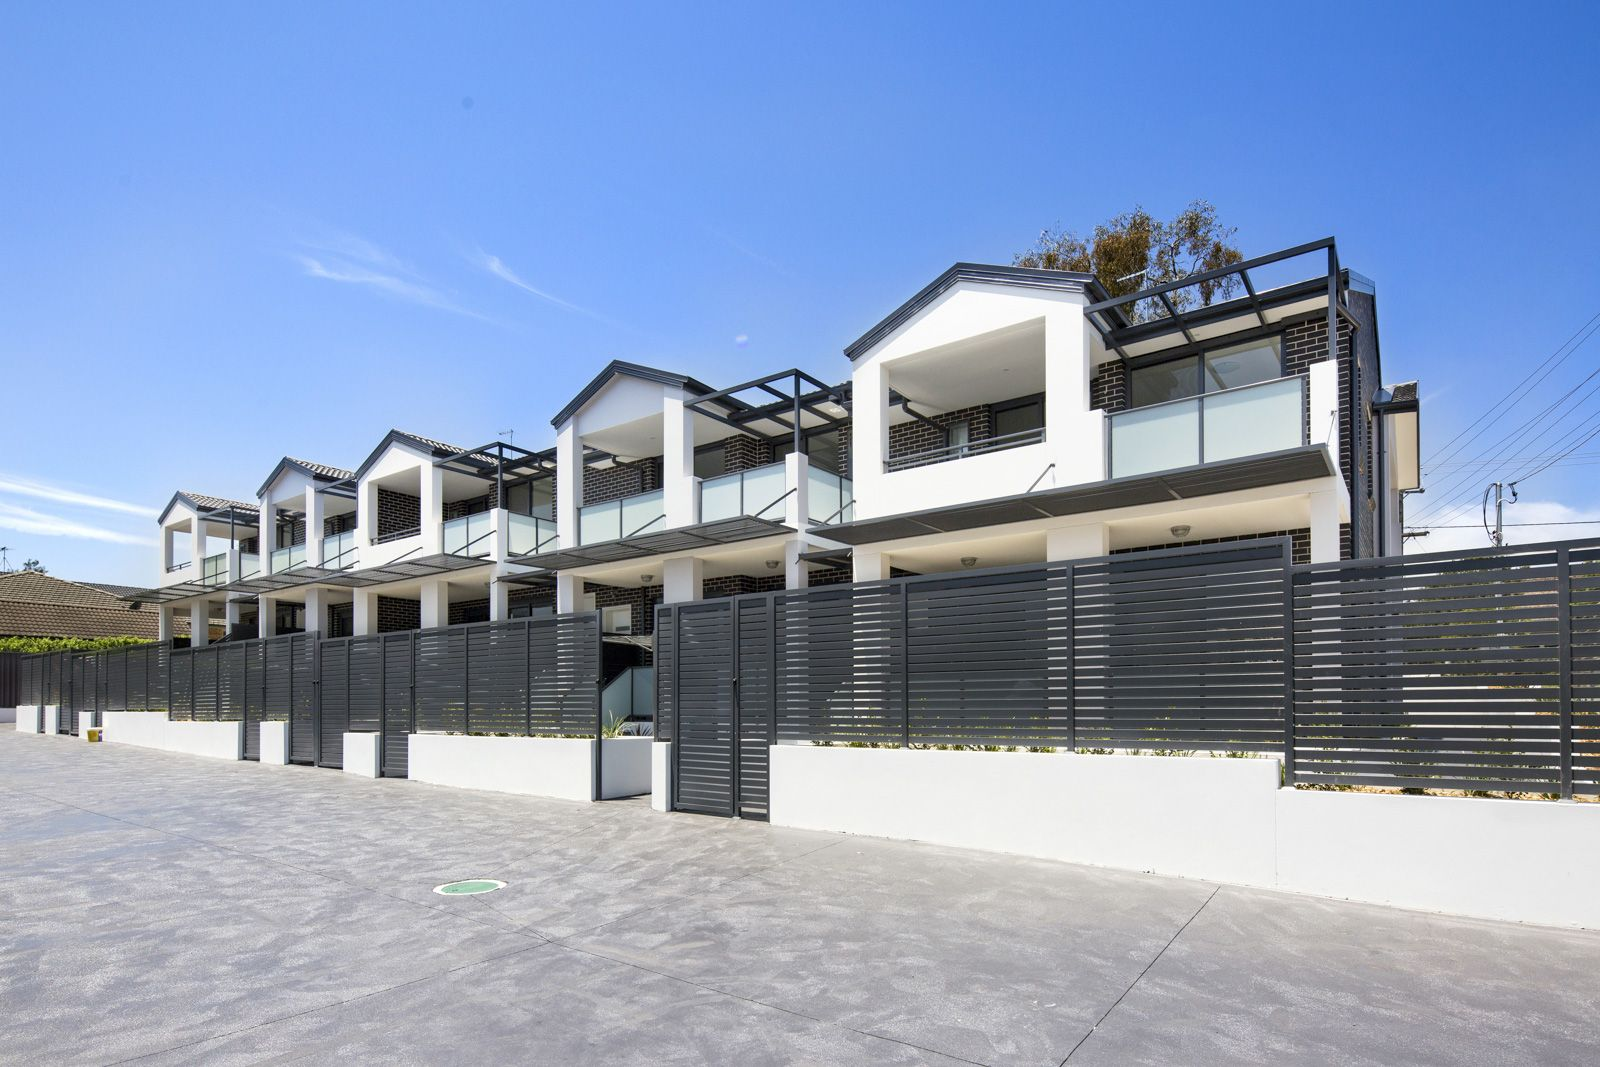 6/127A Lindsay Street, Campbelltown NSW 2560, Image 1